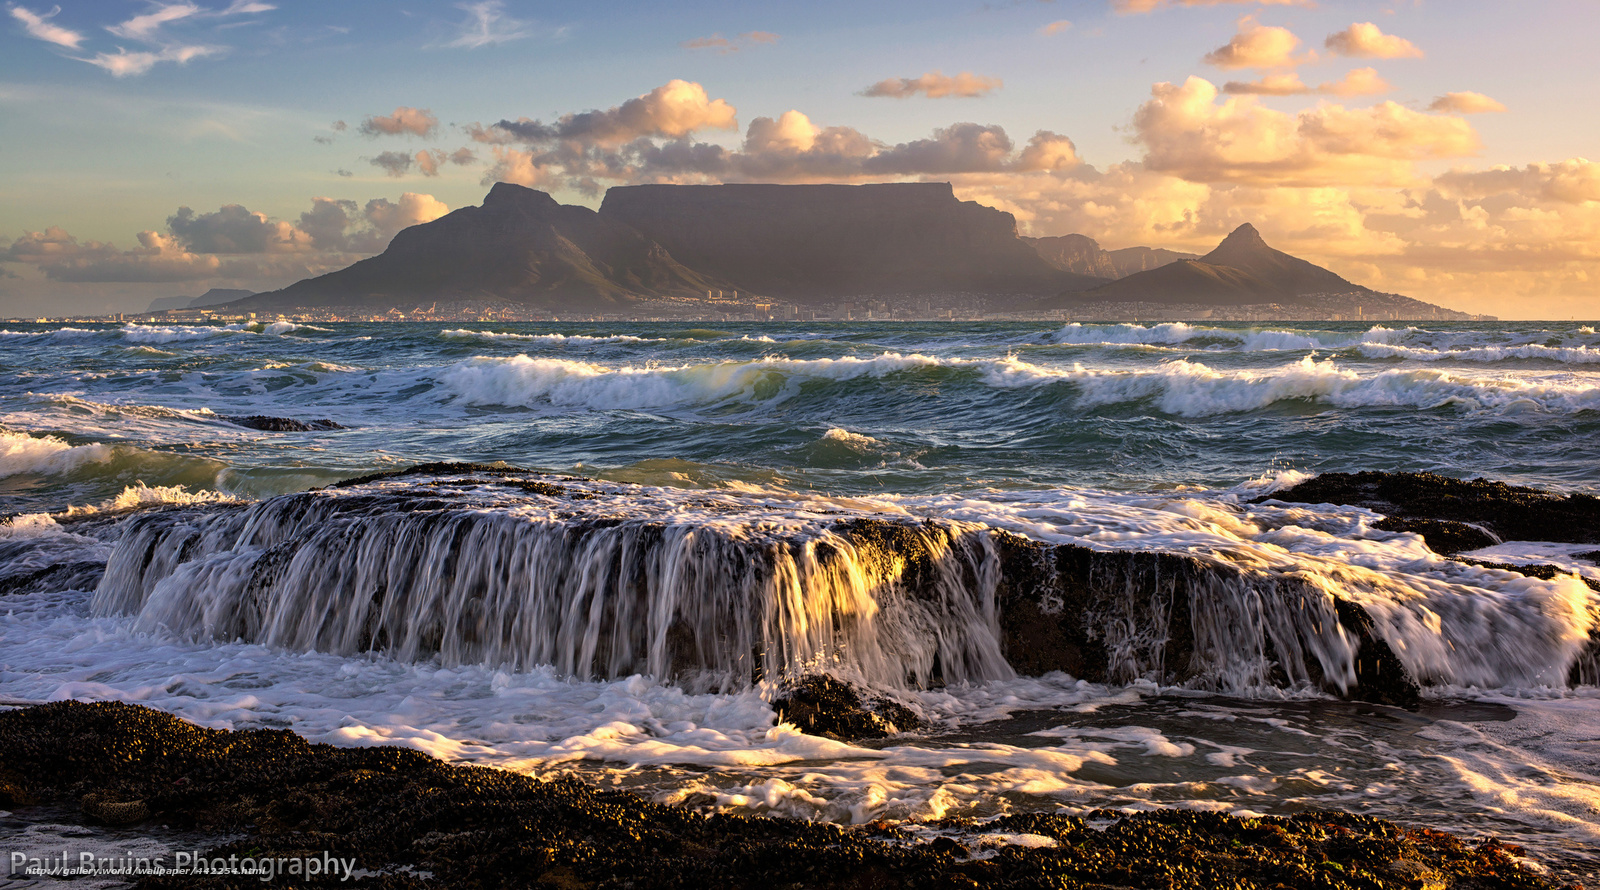 Download wallpaper cape town south africa Capetown South Africa 1600x890